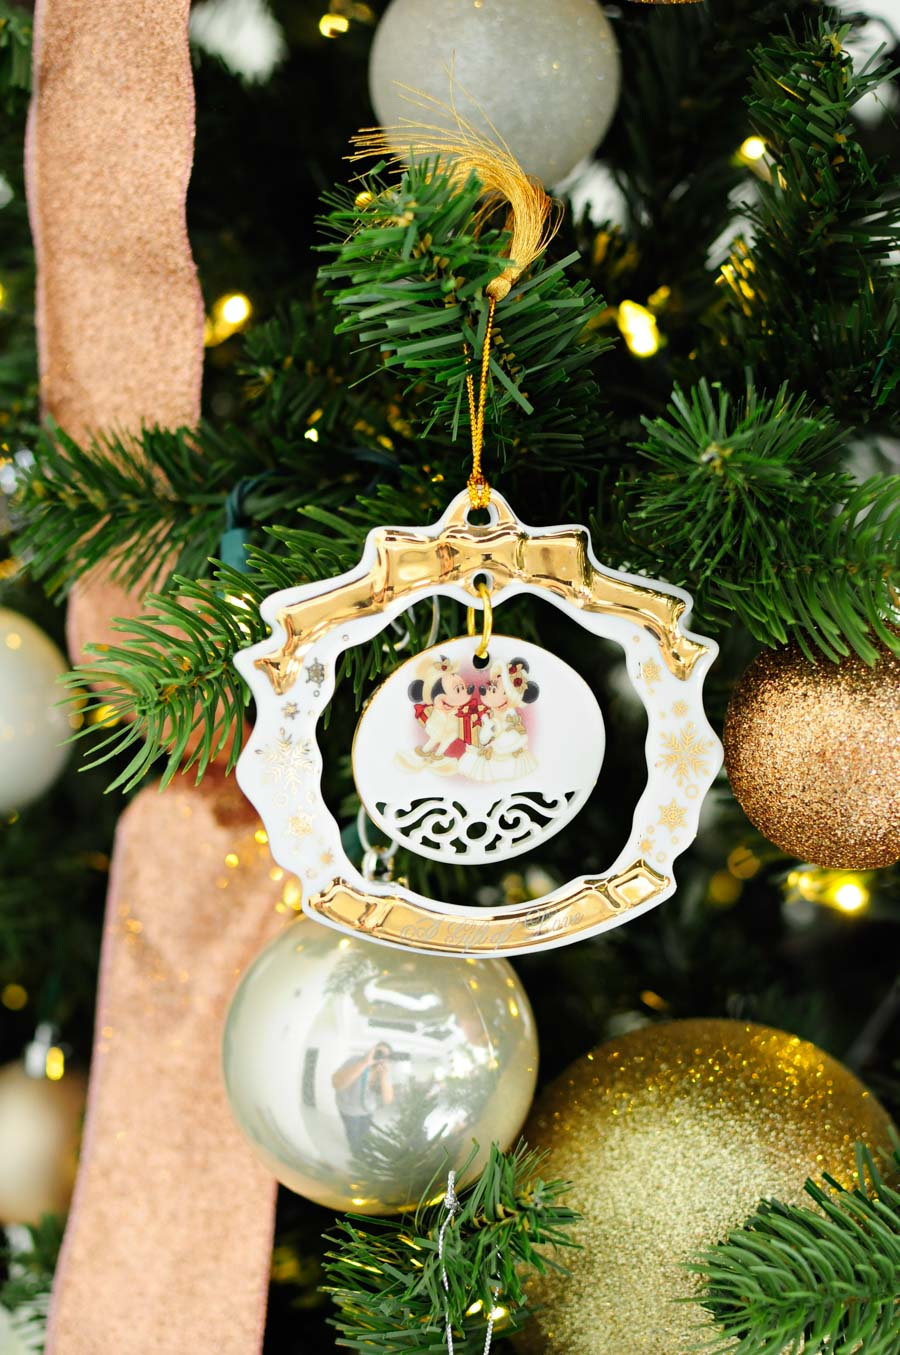 A Disney World wedding ornament captures special memories on the Christmas tree.